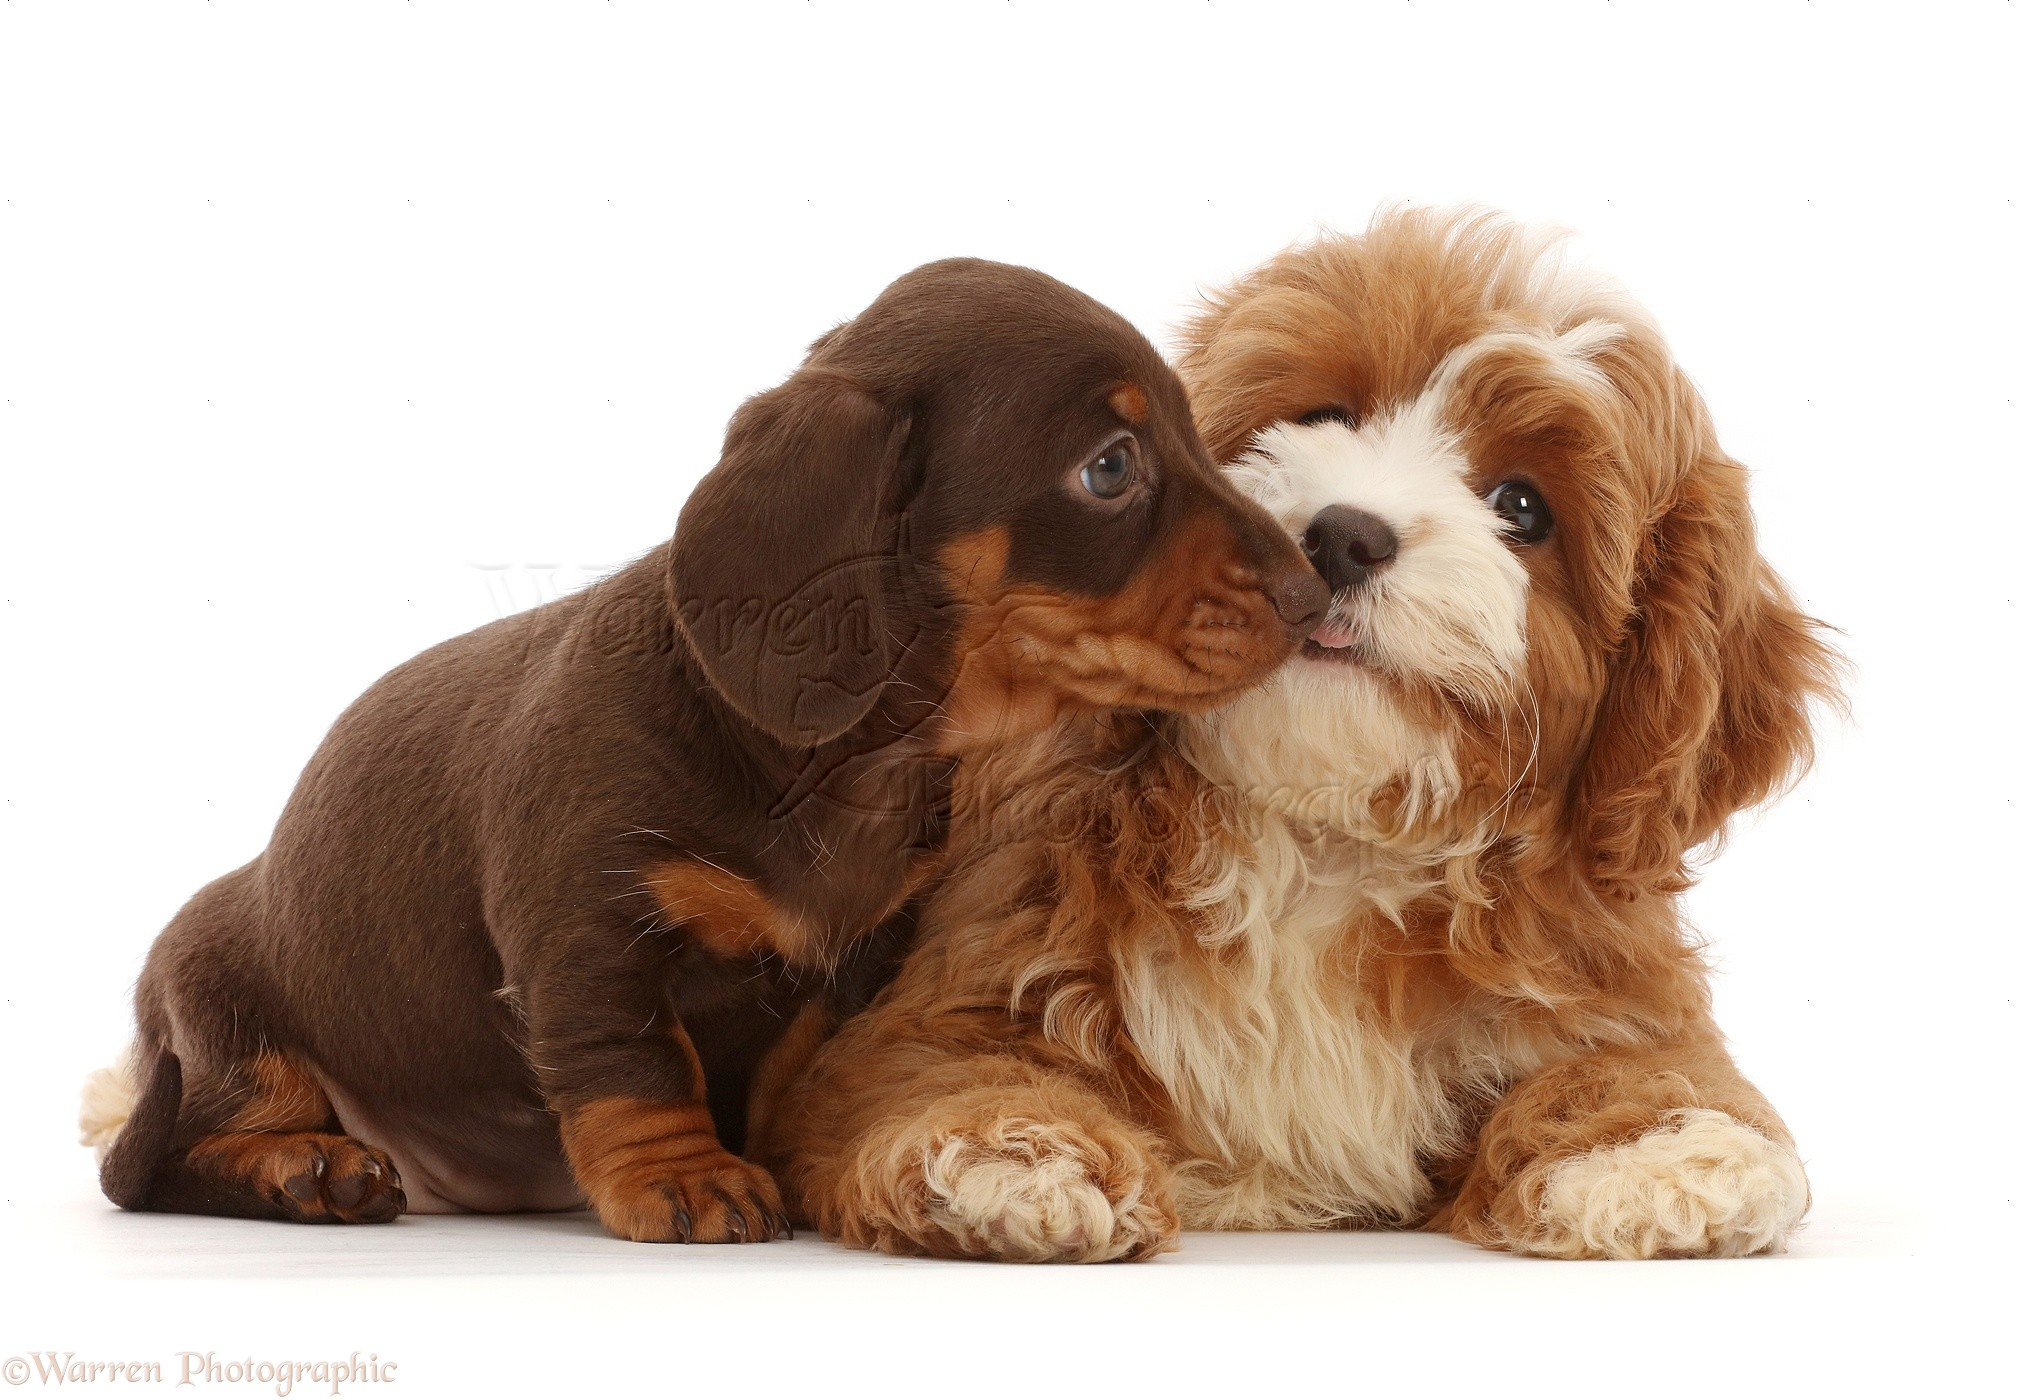 Dogs Chocolate Dachshund Puppy With Cavapoo Puppy Photo Wp47190